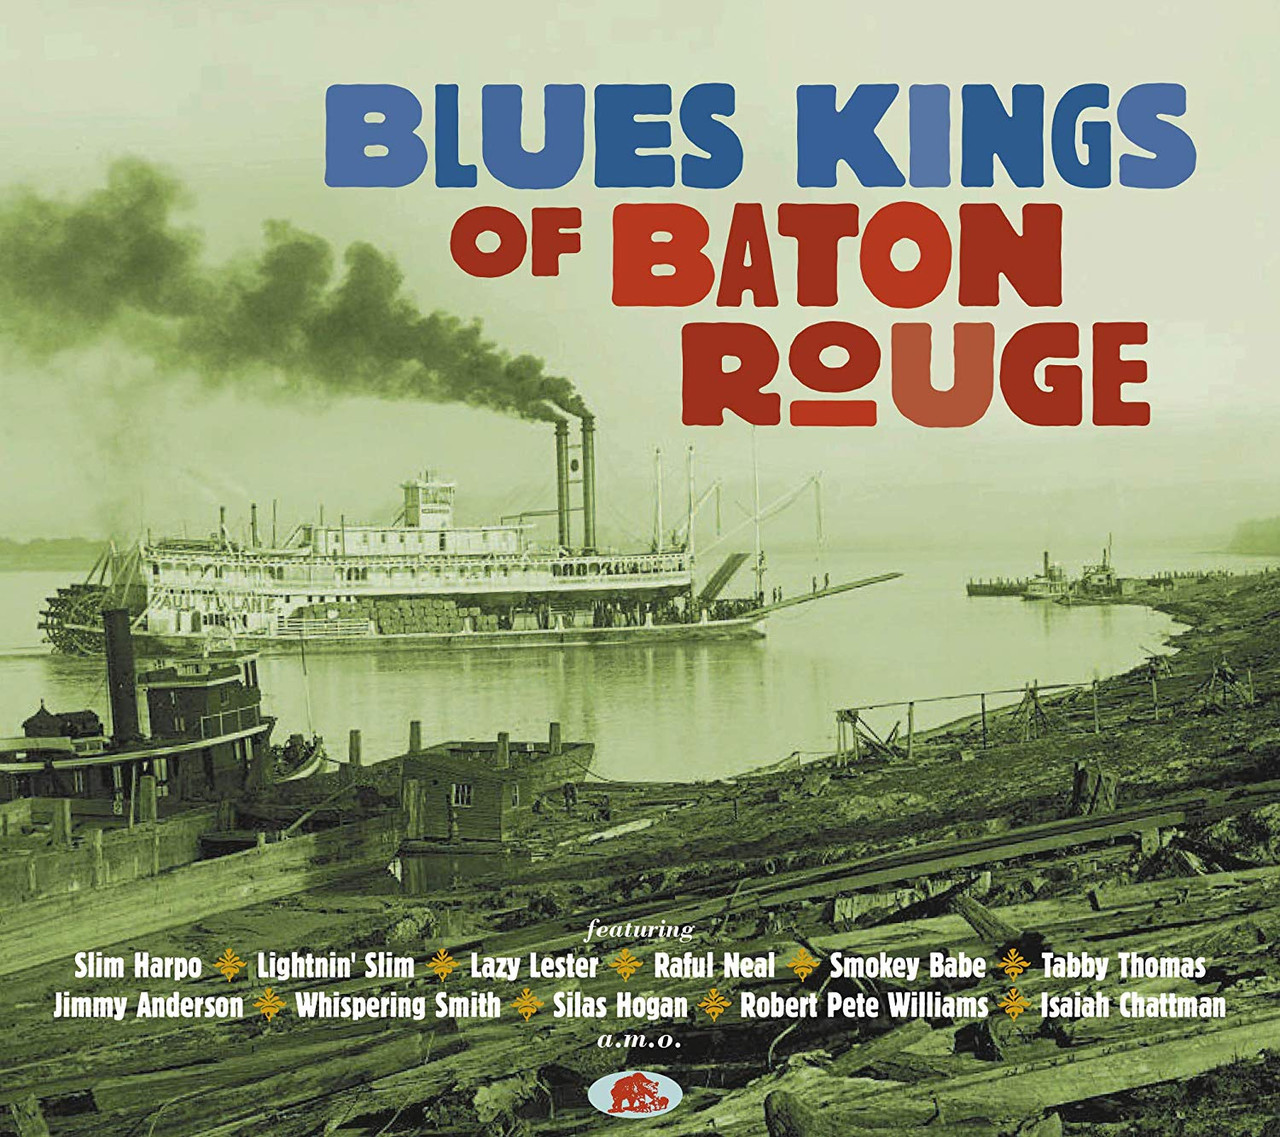 Blues Kings Of Baton Rouge - 2 CD SET - 53 SONGS - 52 PAGE BOOKLET